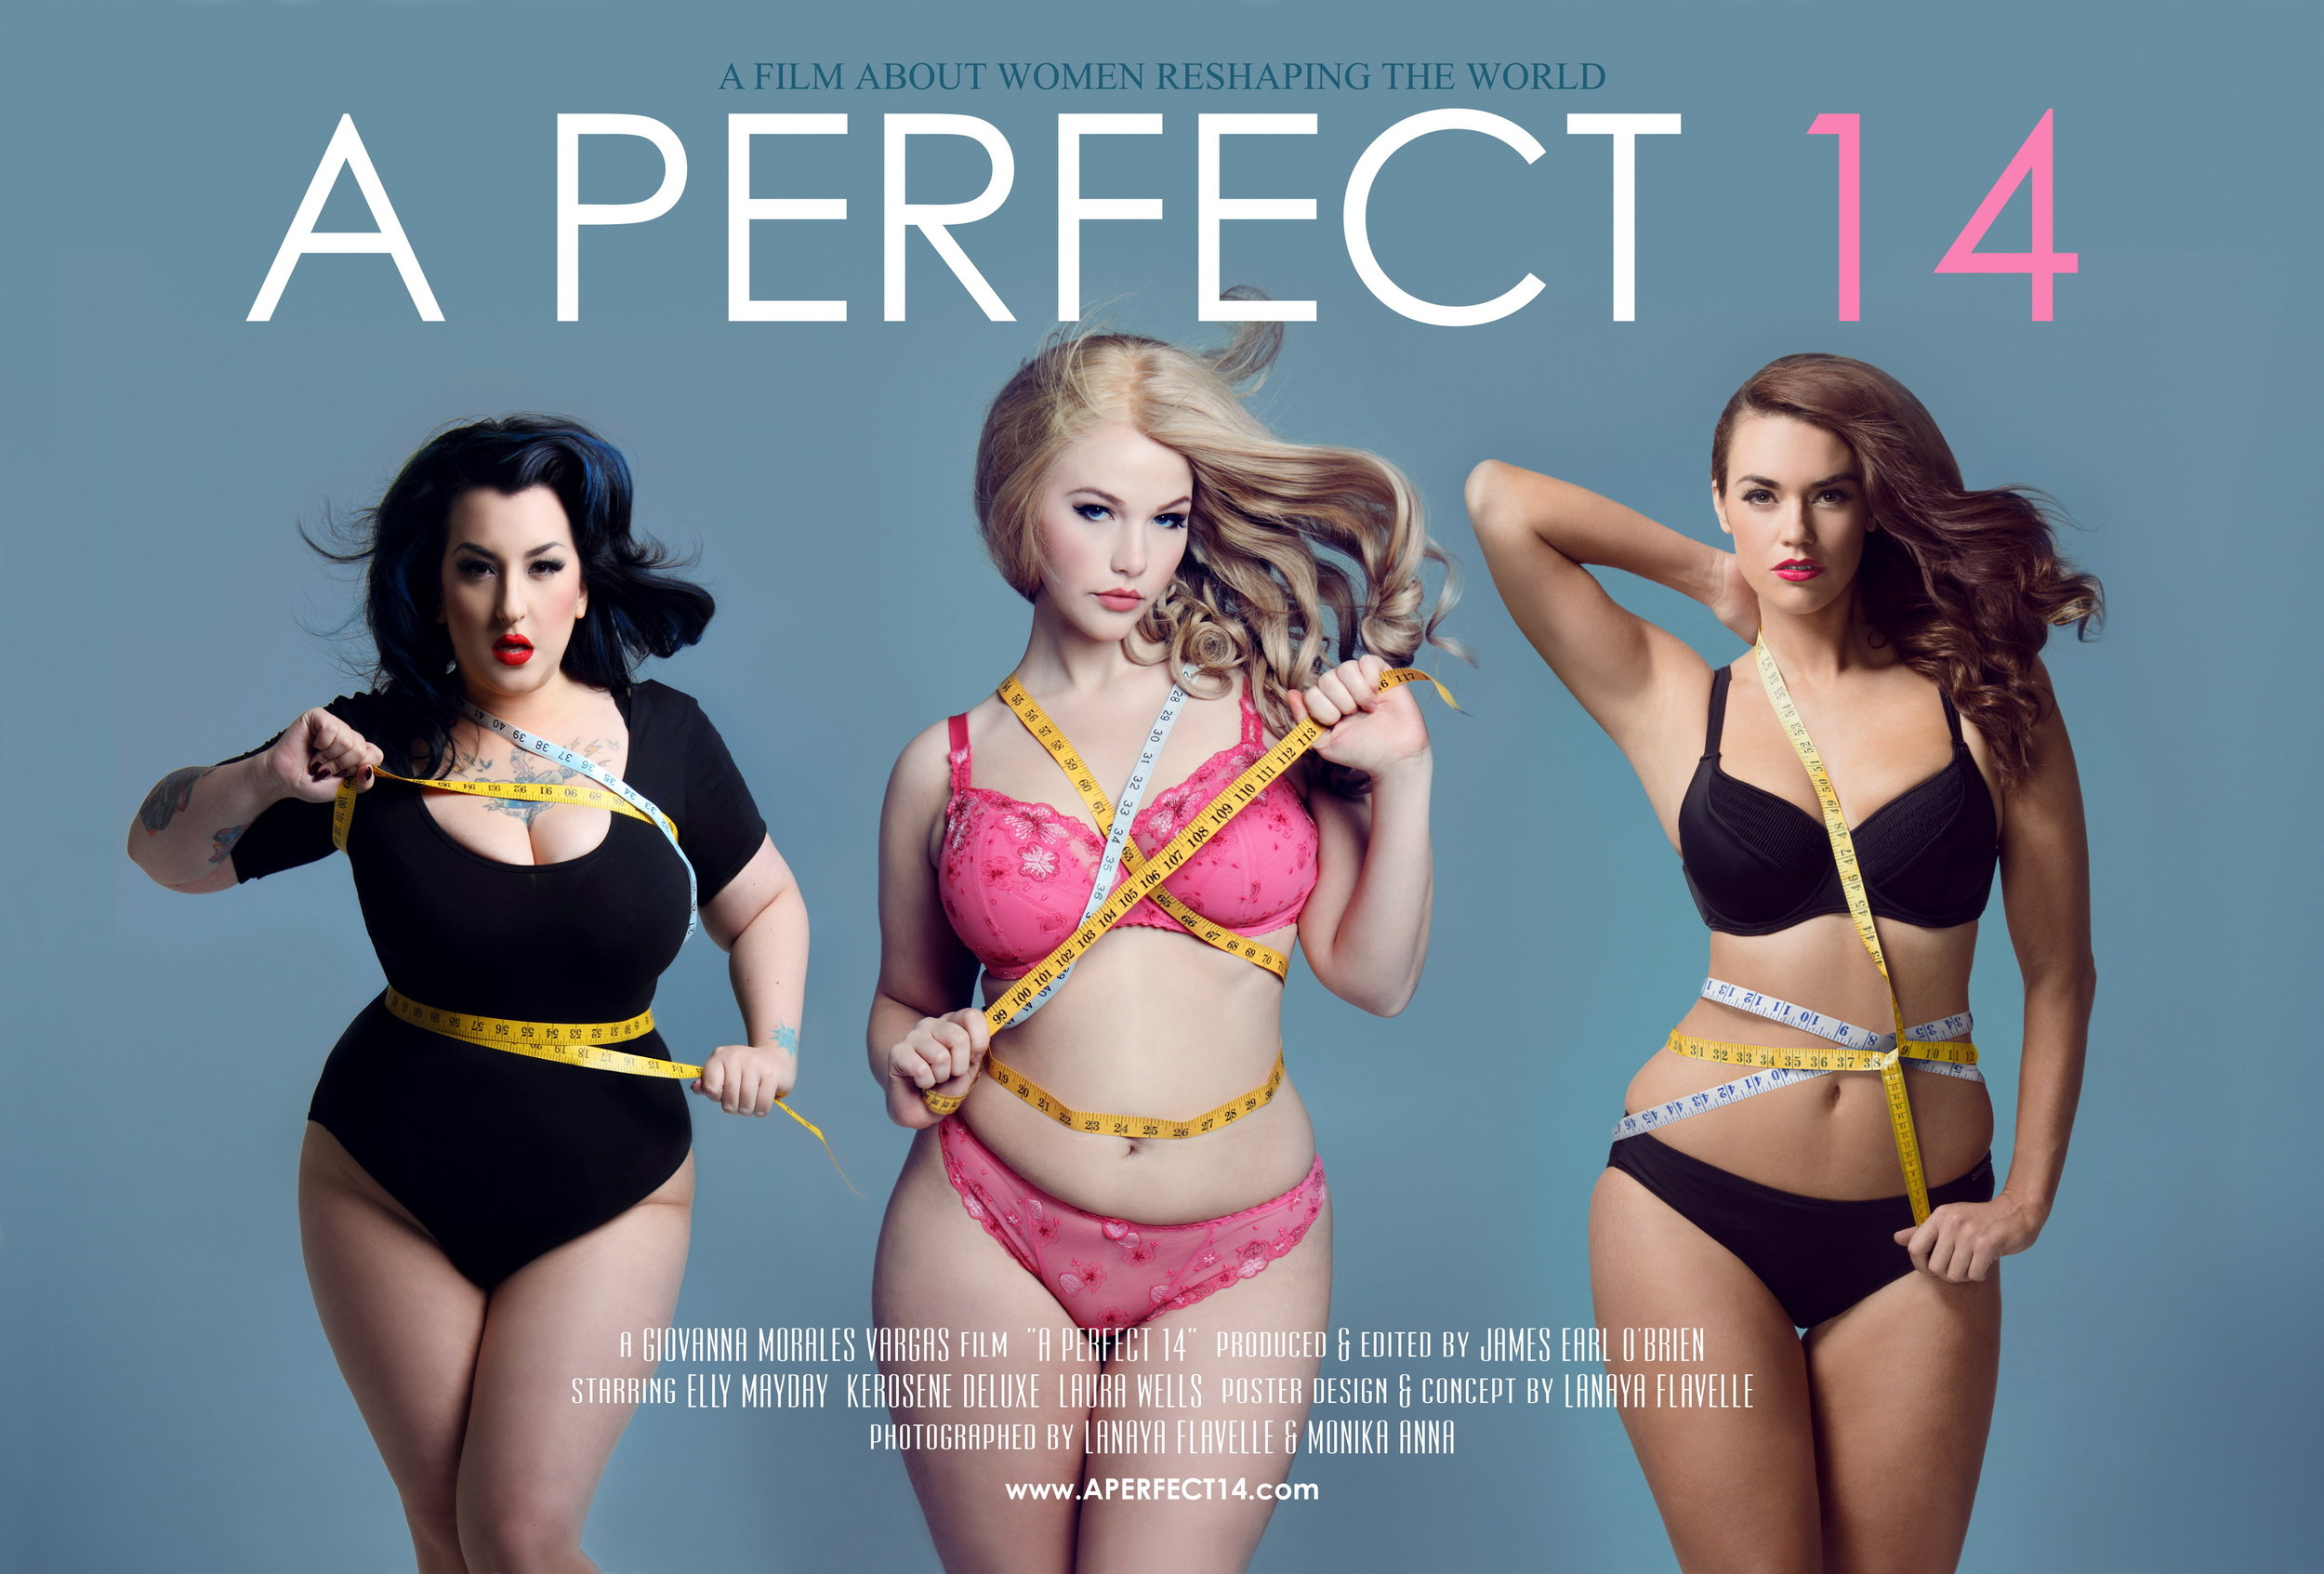 A Perfect 14-Poster-3000w.jpg